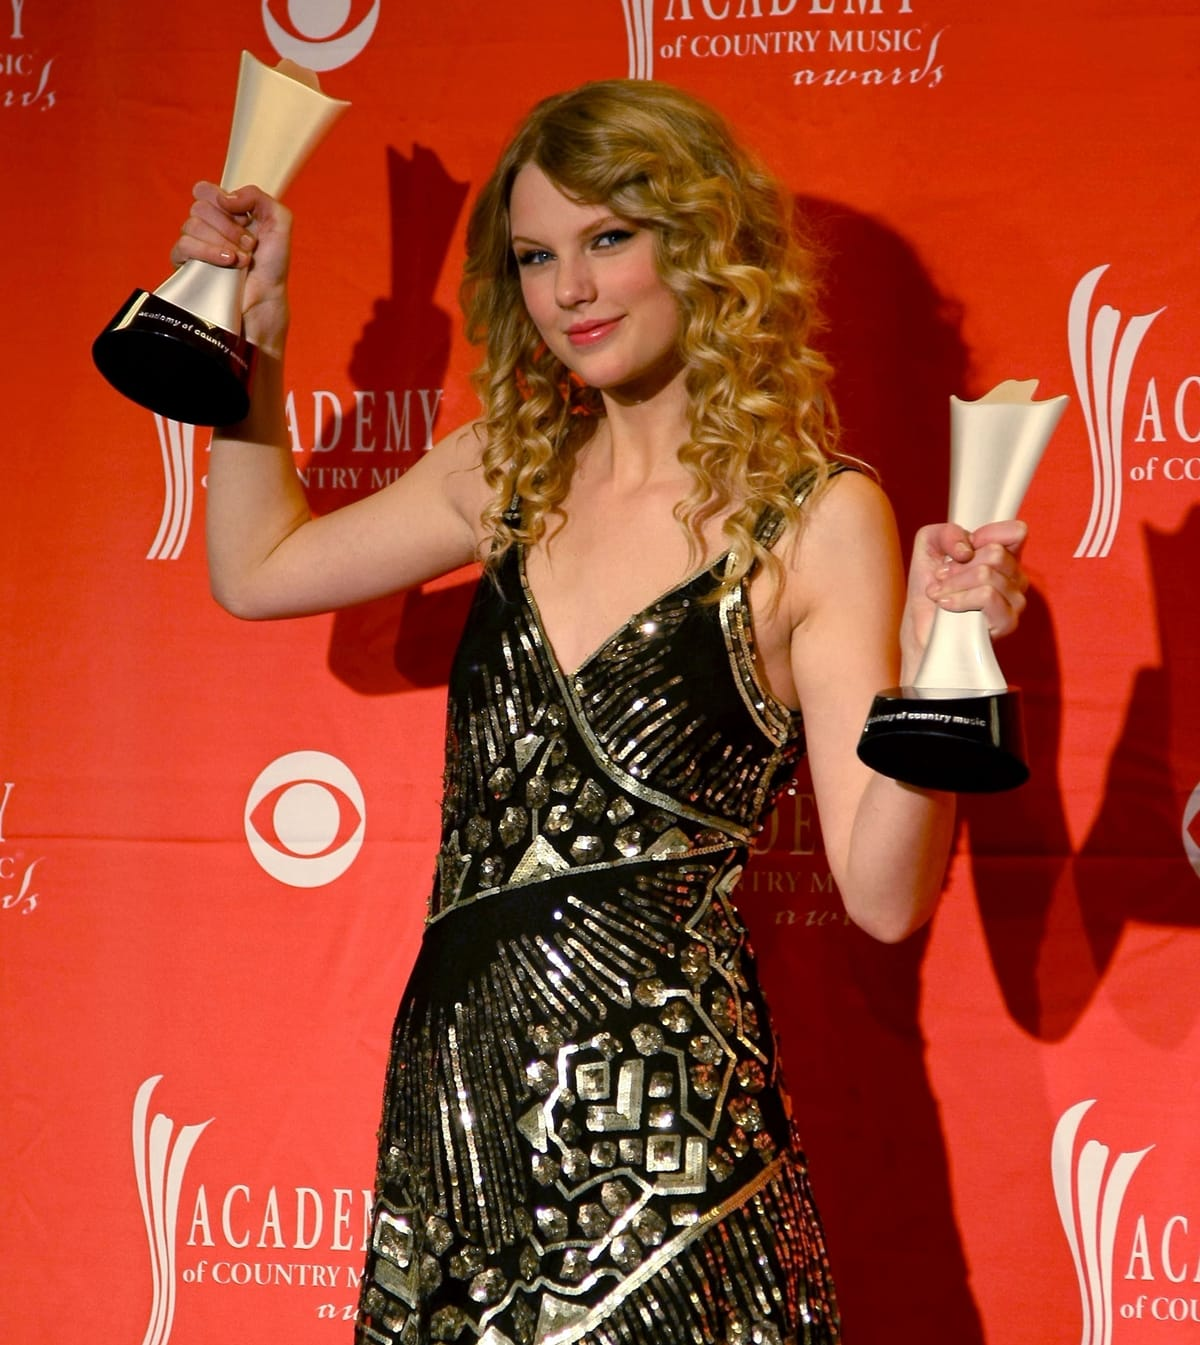 Taylor Swift's Fearless won Album of the Year at the Country Music Association Awards and the Academy of Country Music Awards